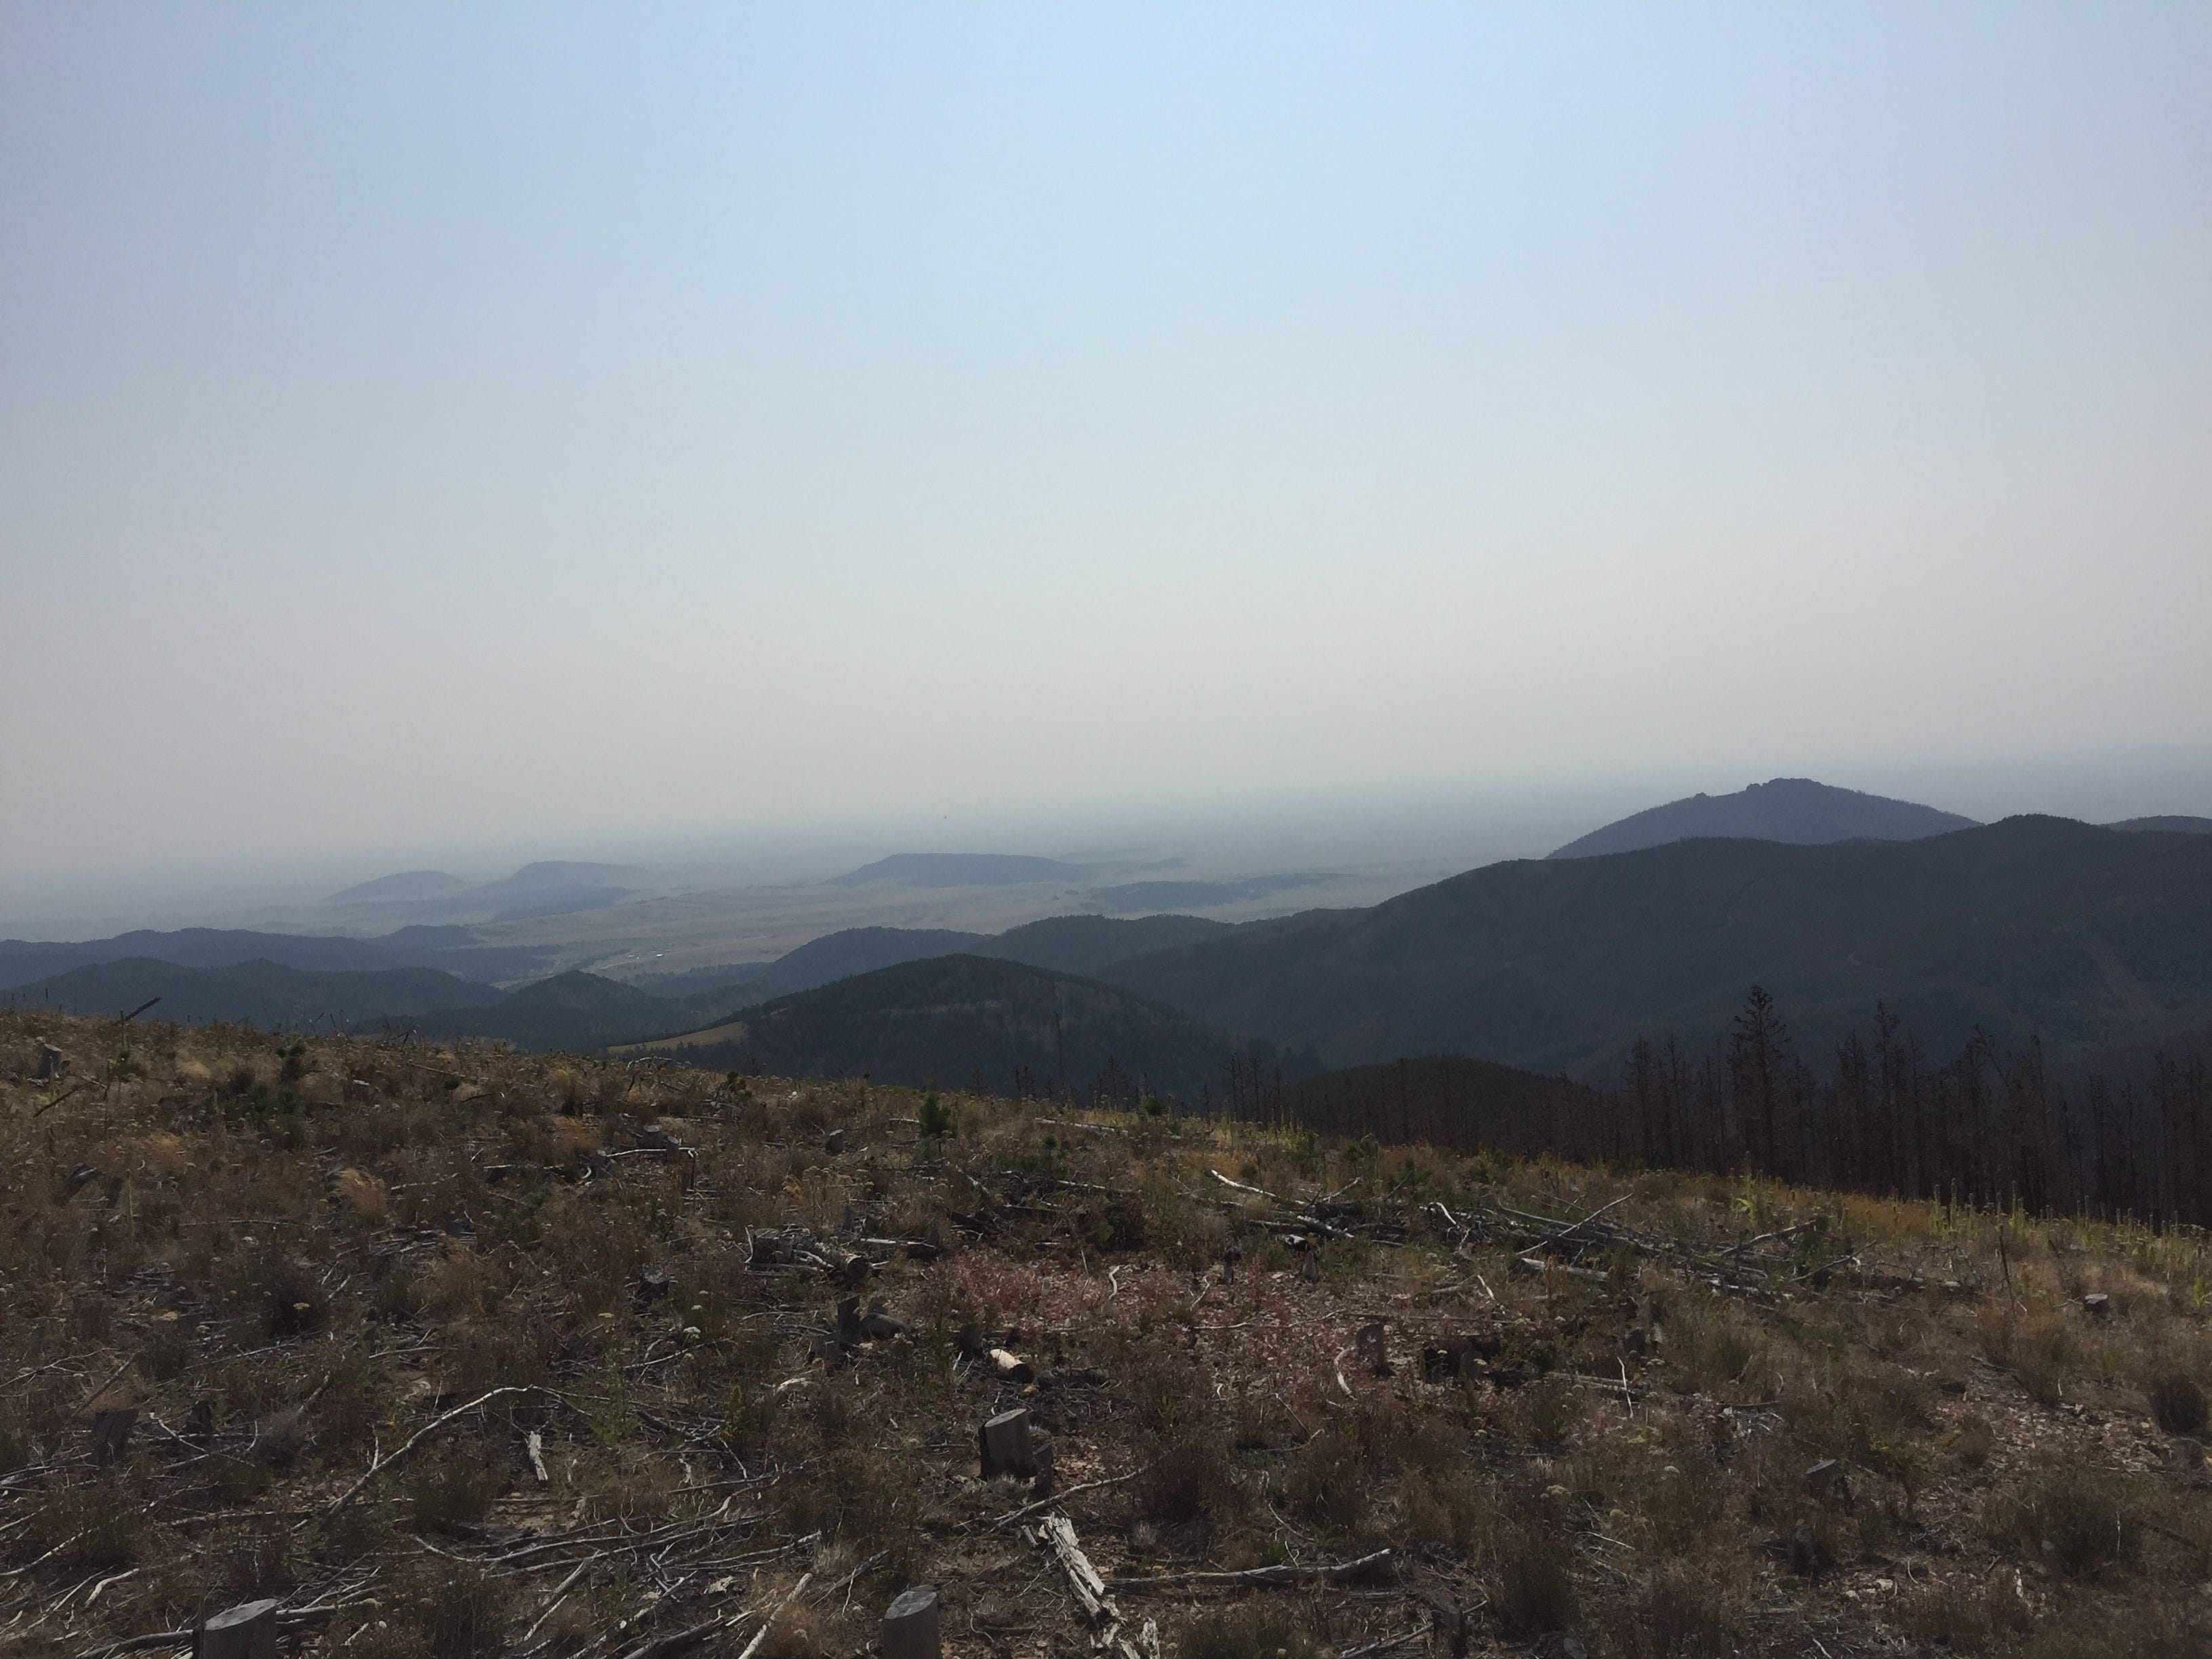 In August, smoke from wildfires blanketed northcentral Montana's Little Rocky Mountains, an outlier mountain range where gold mining has caused extensive water quality problems.